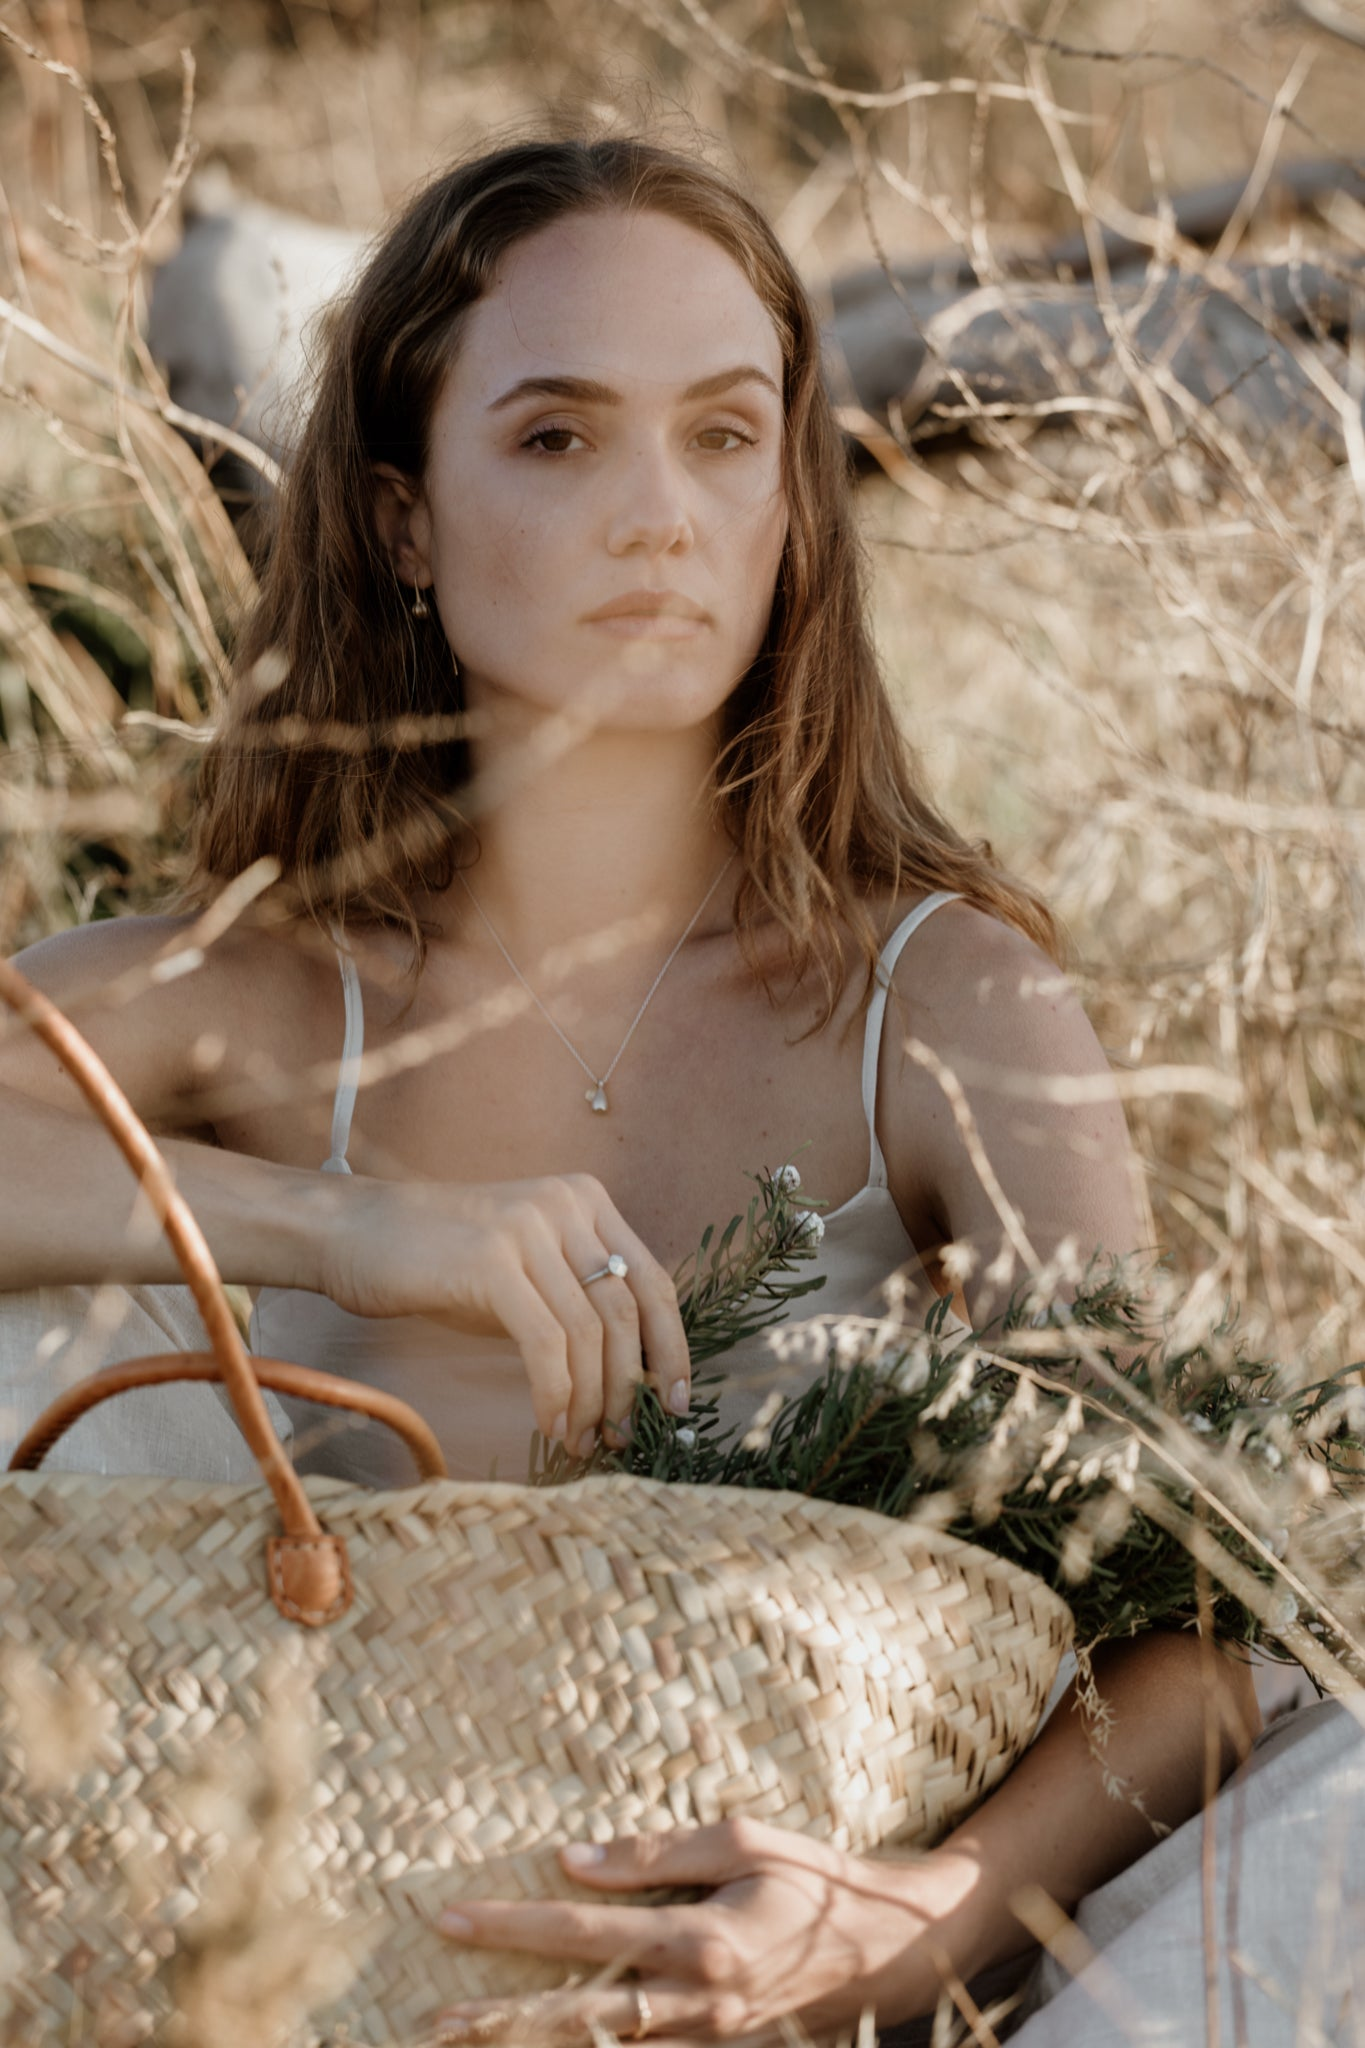 Model in grassland with eco-friendly recycled silver and gold jewellery